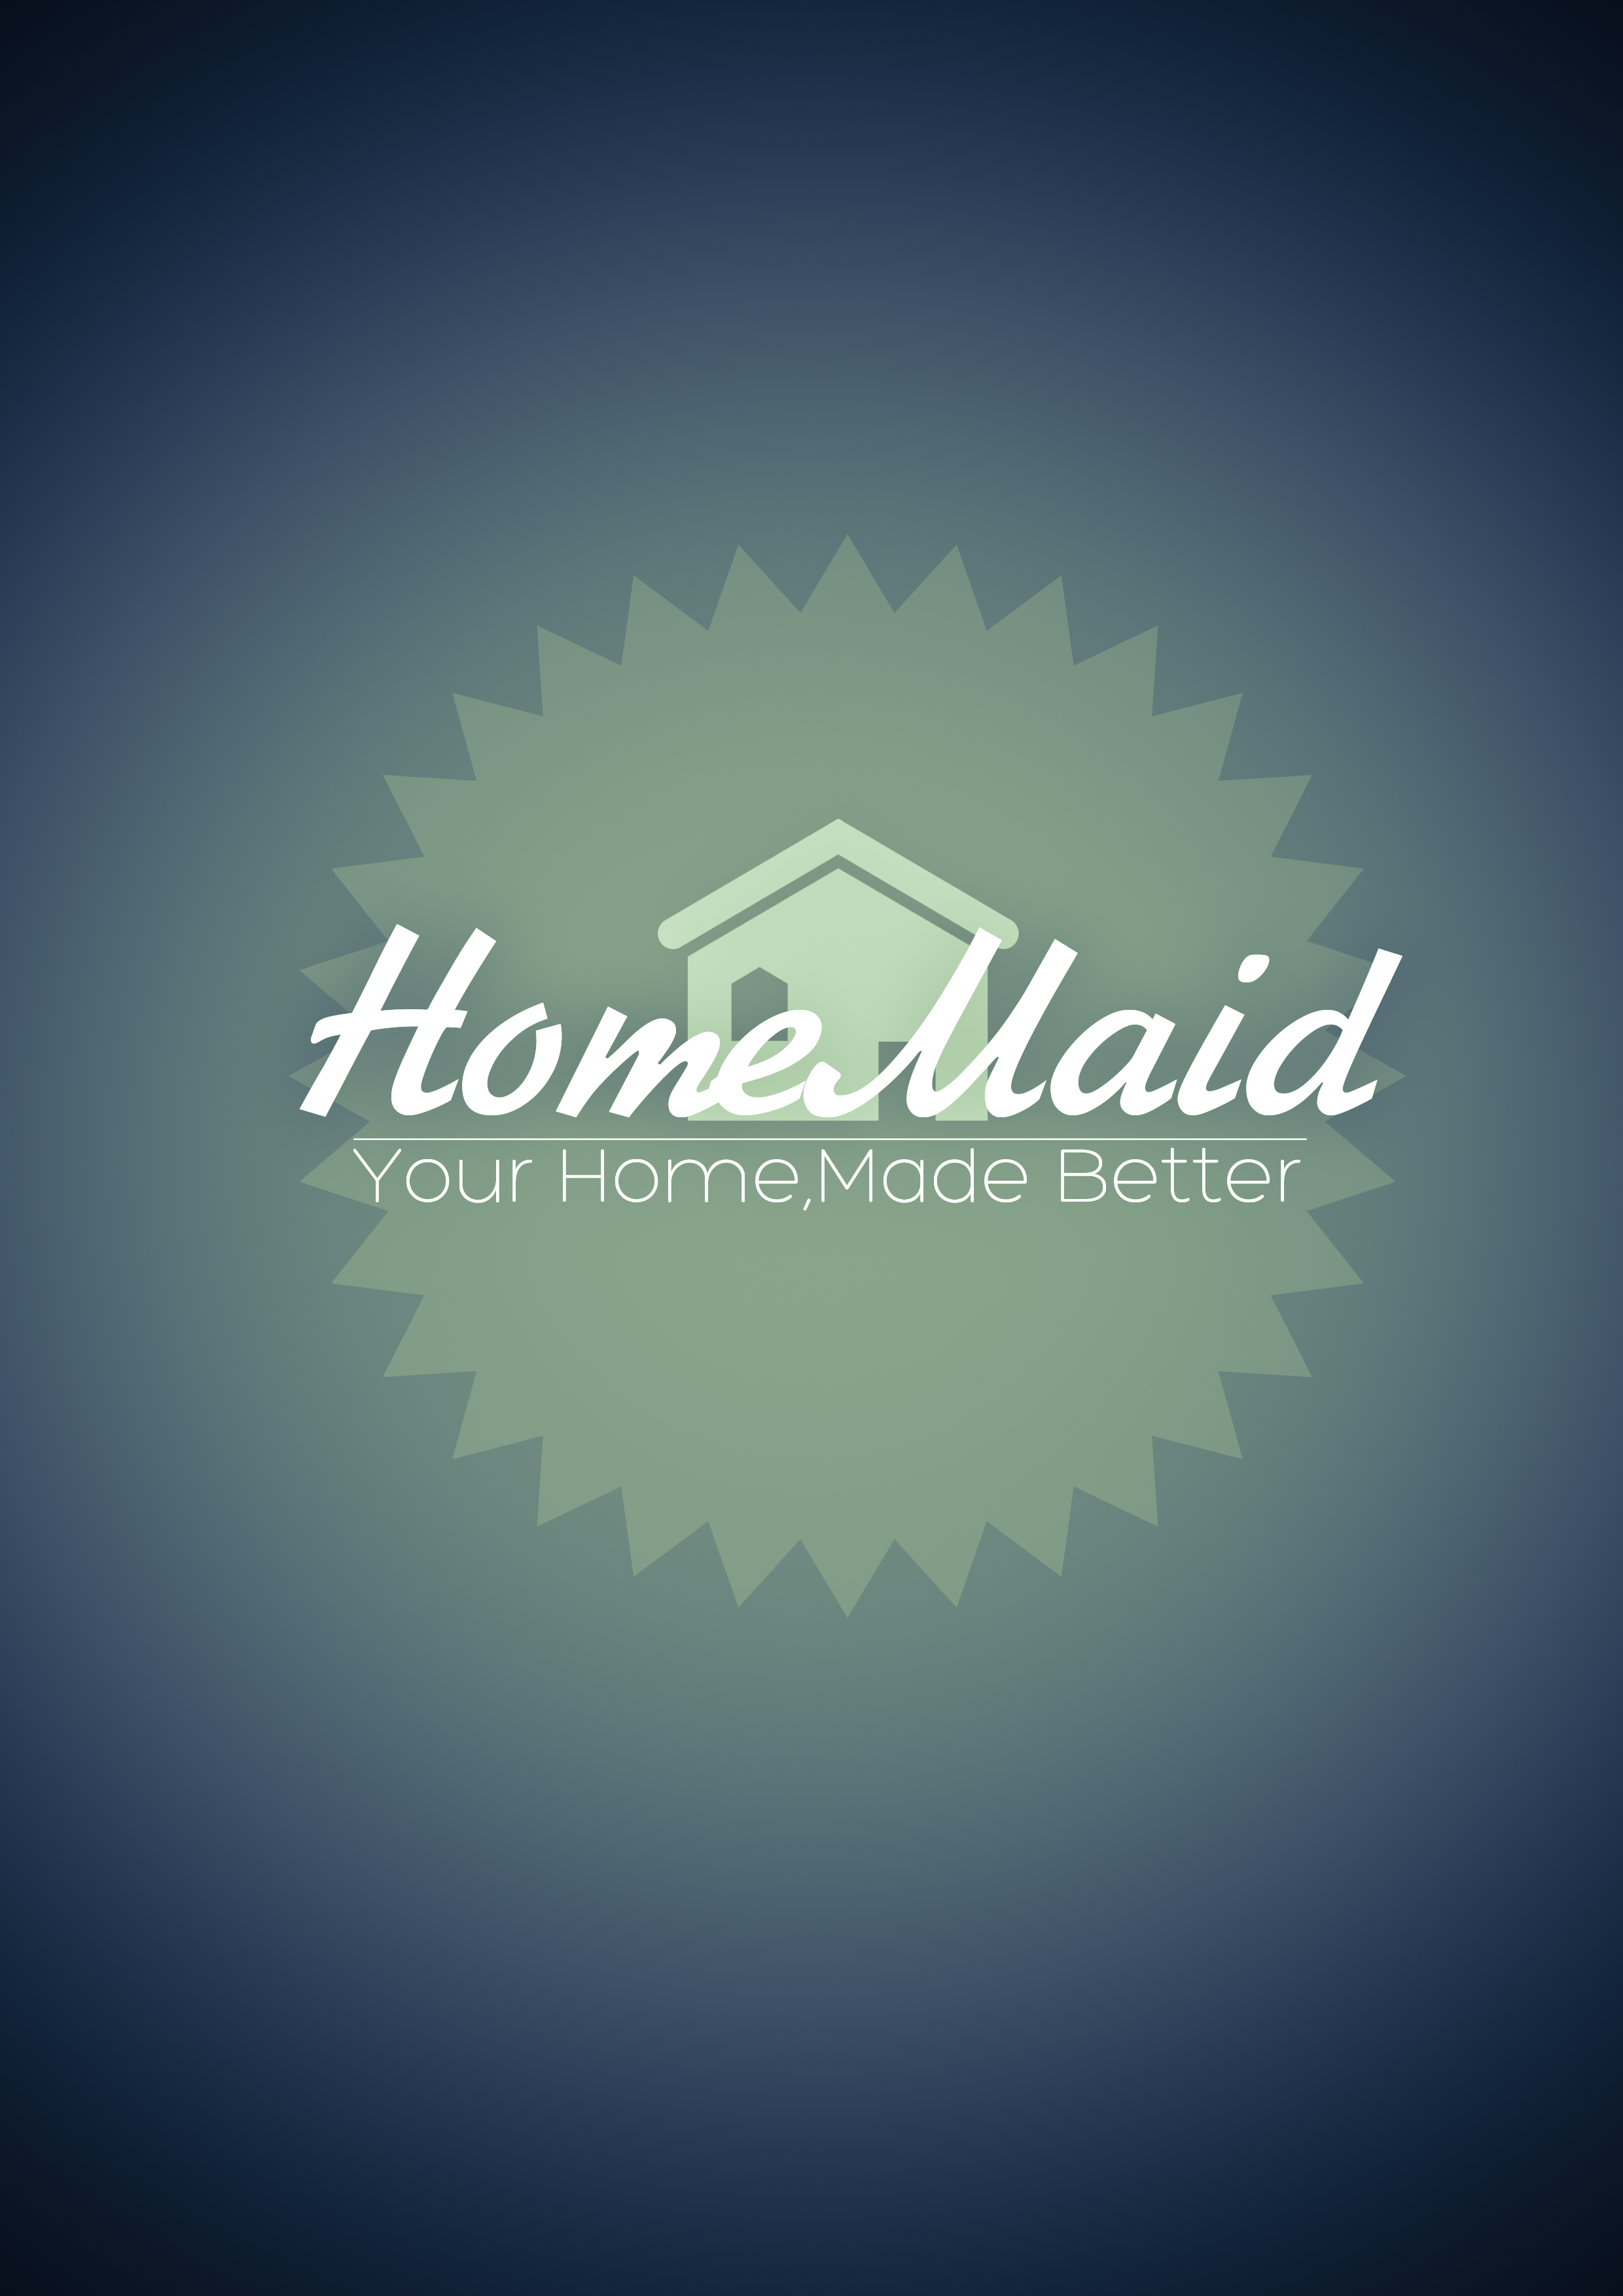 Logo Design by Ruslan Onopko - Entry No. 8 in the Logo Design Contest Unique Logo Design Wanted for HomeMaid.